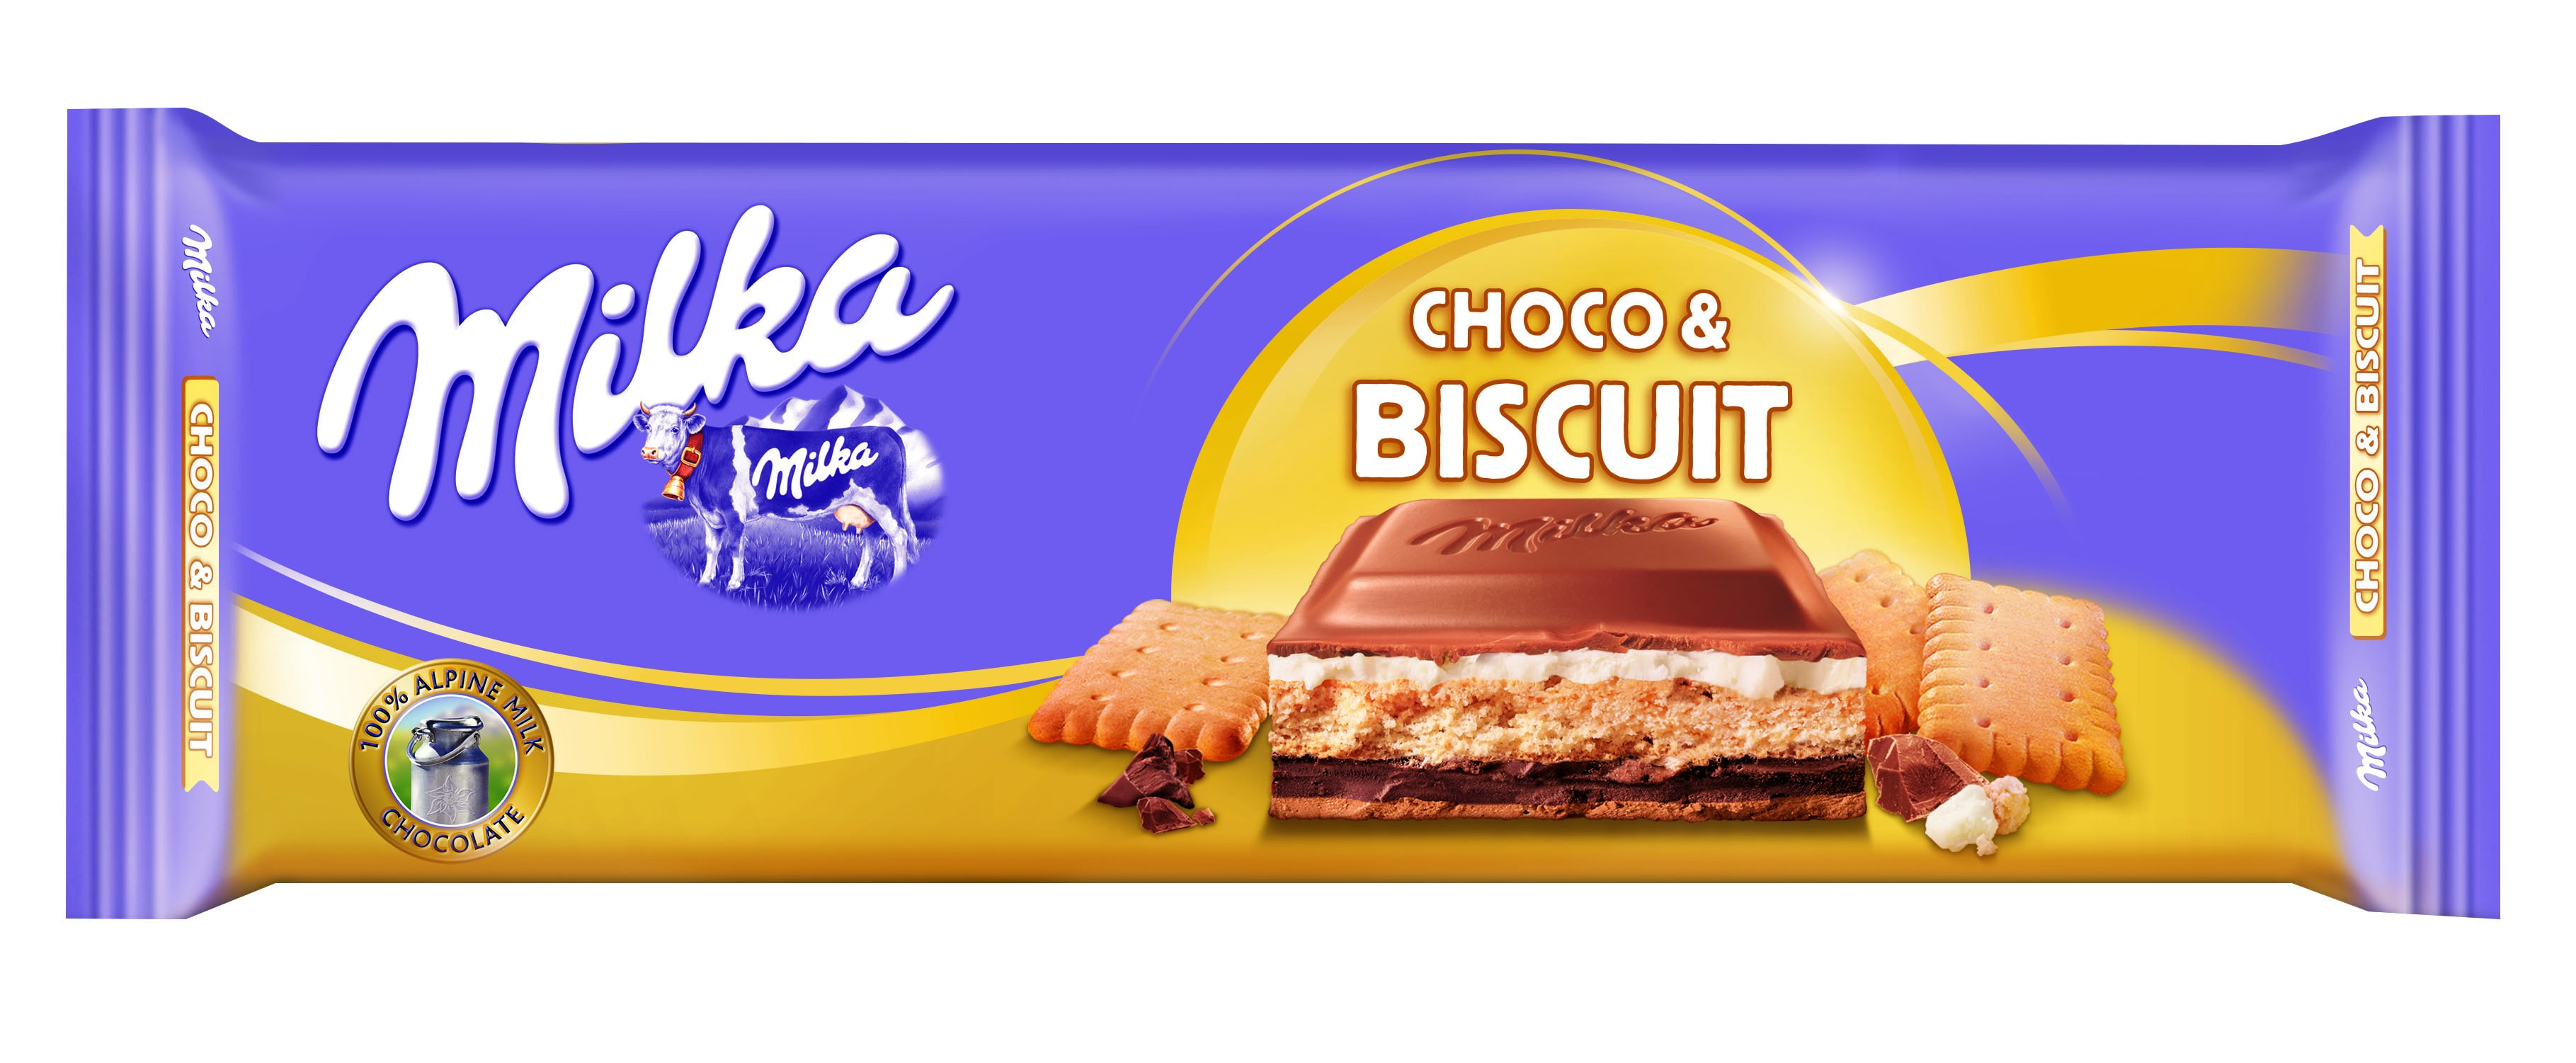 MILKA 300g Choco & Biscuit Chocolate